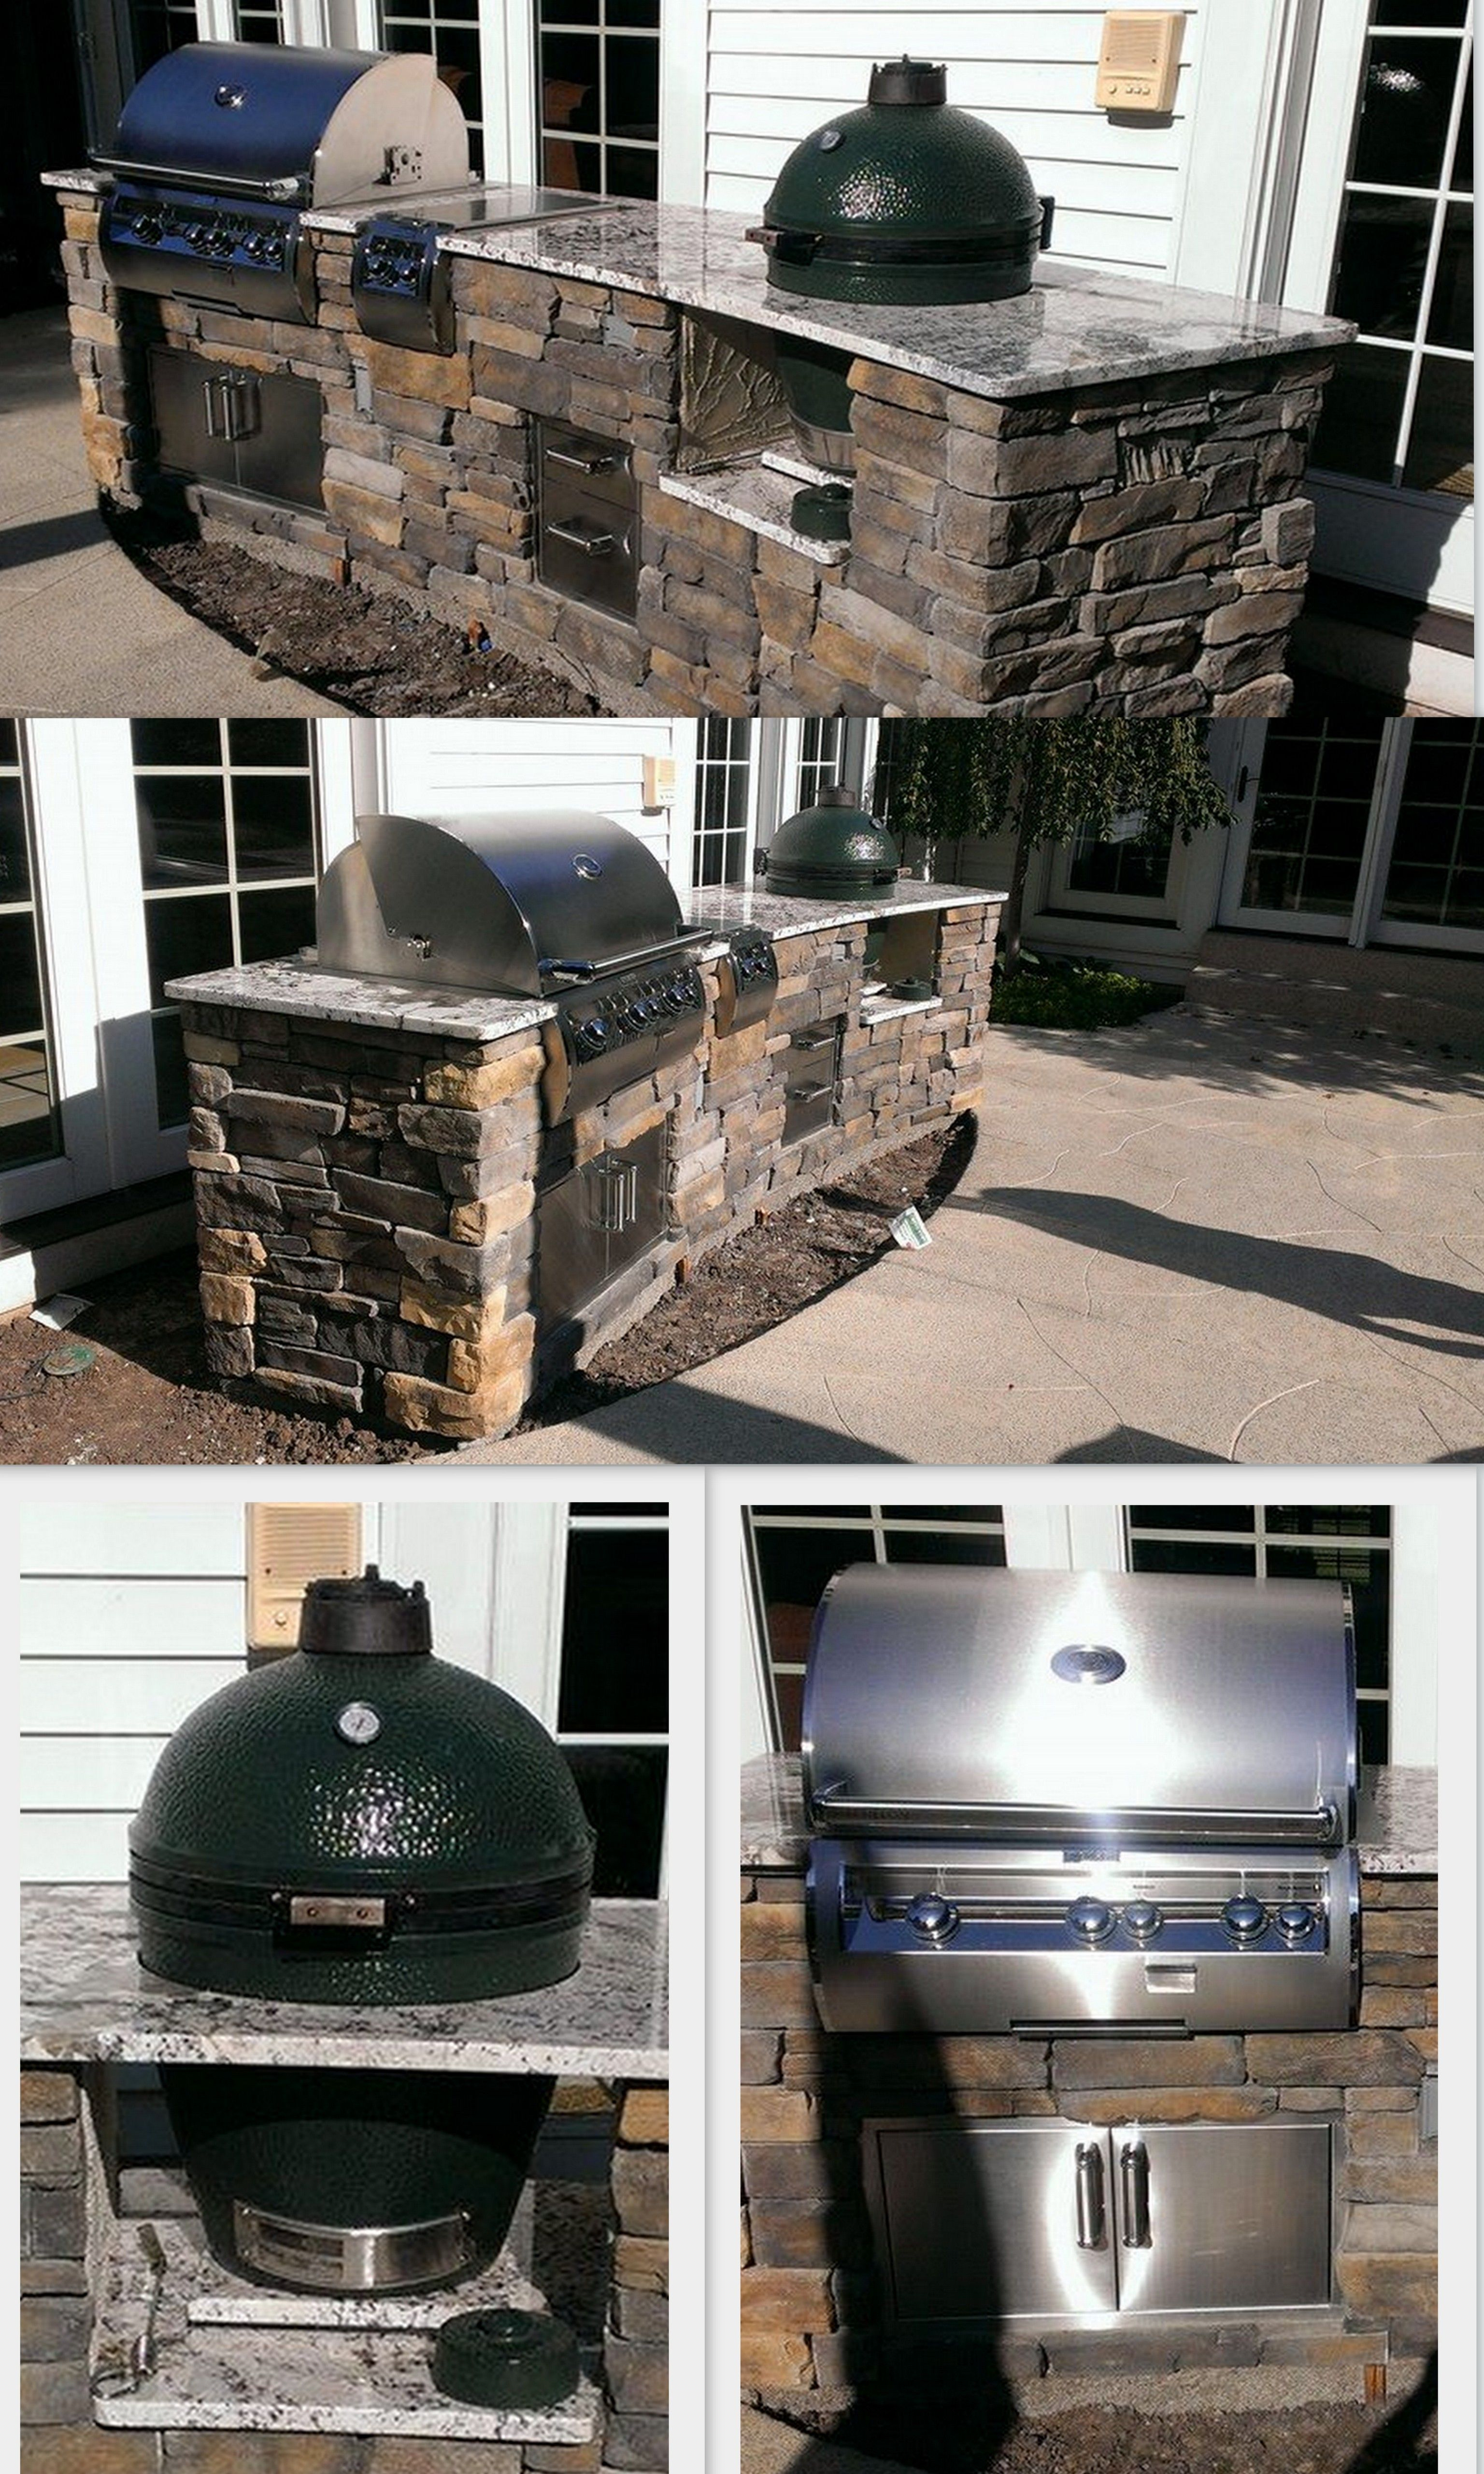 Custom outdoor kitchen with gas grill and Big Green Egg